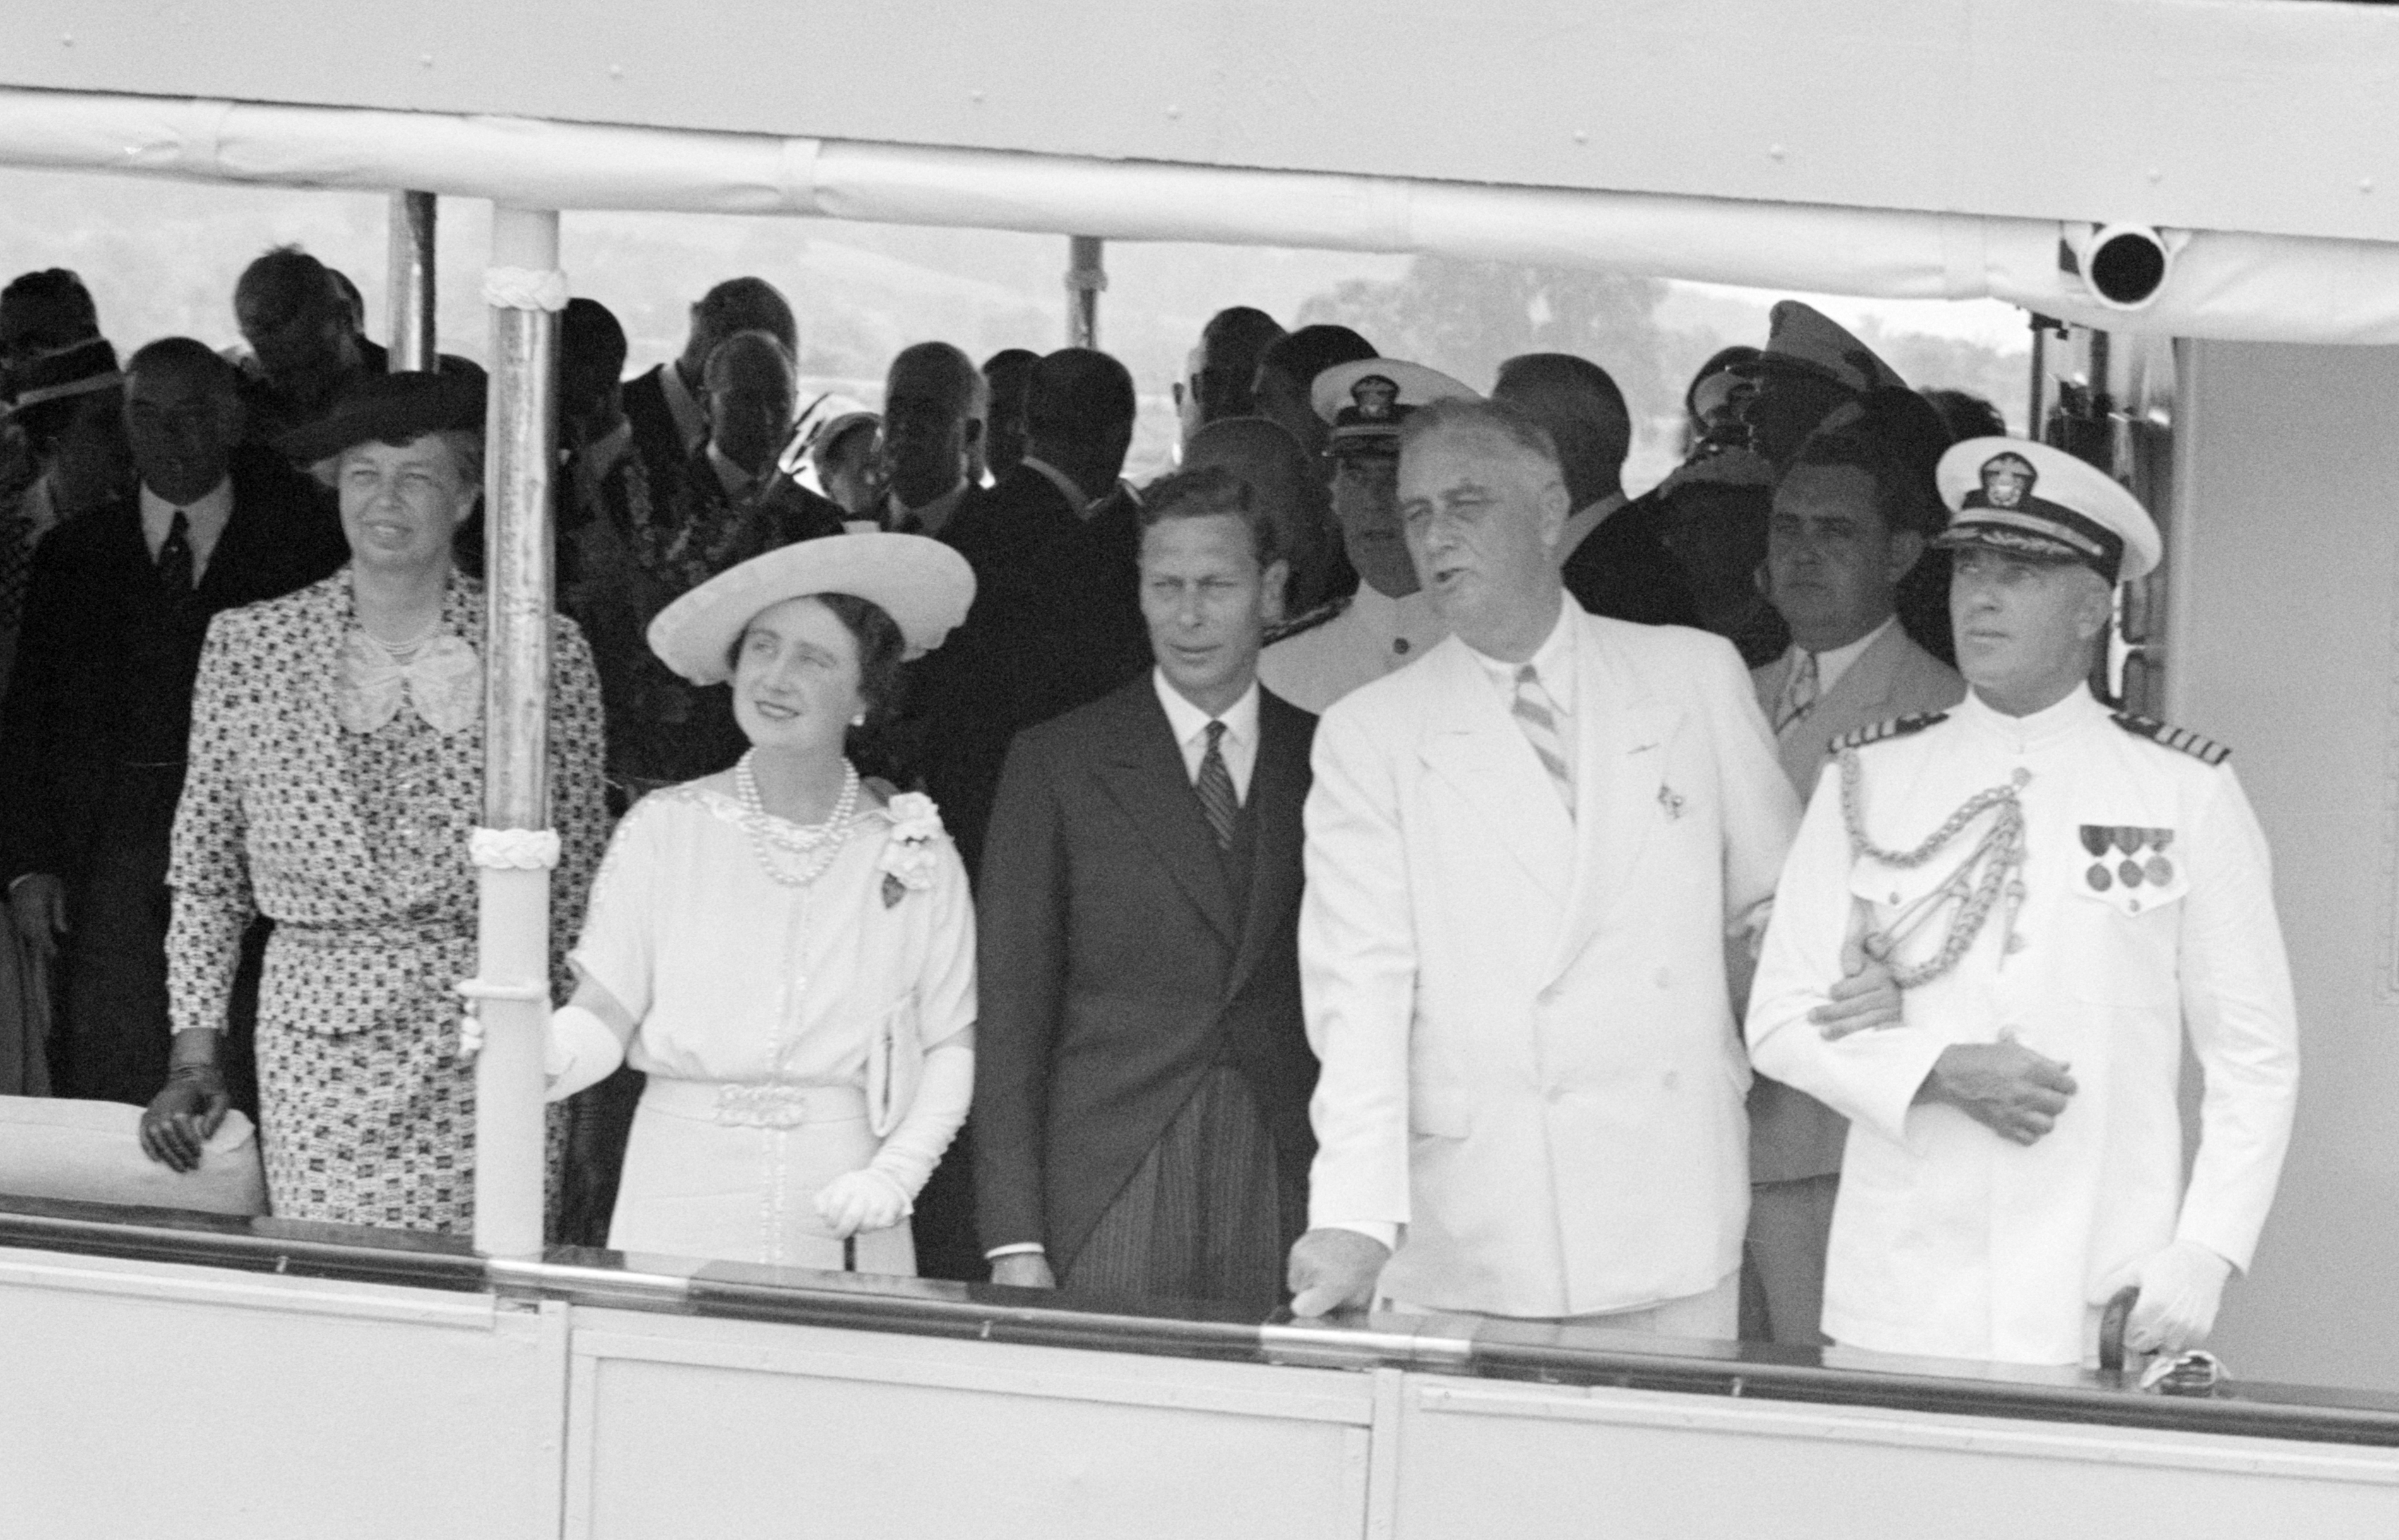 The Roosevelts with the King and Queen of Great Britain sailing from Washington, DC to Mt. Vernon, Virginia on the USS Potomac. June 9, 1939